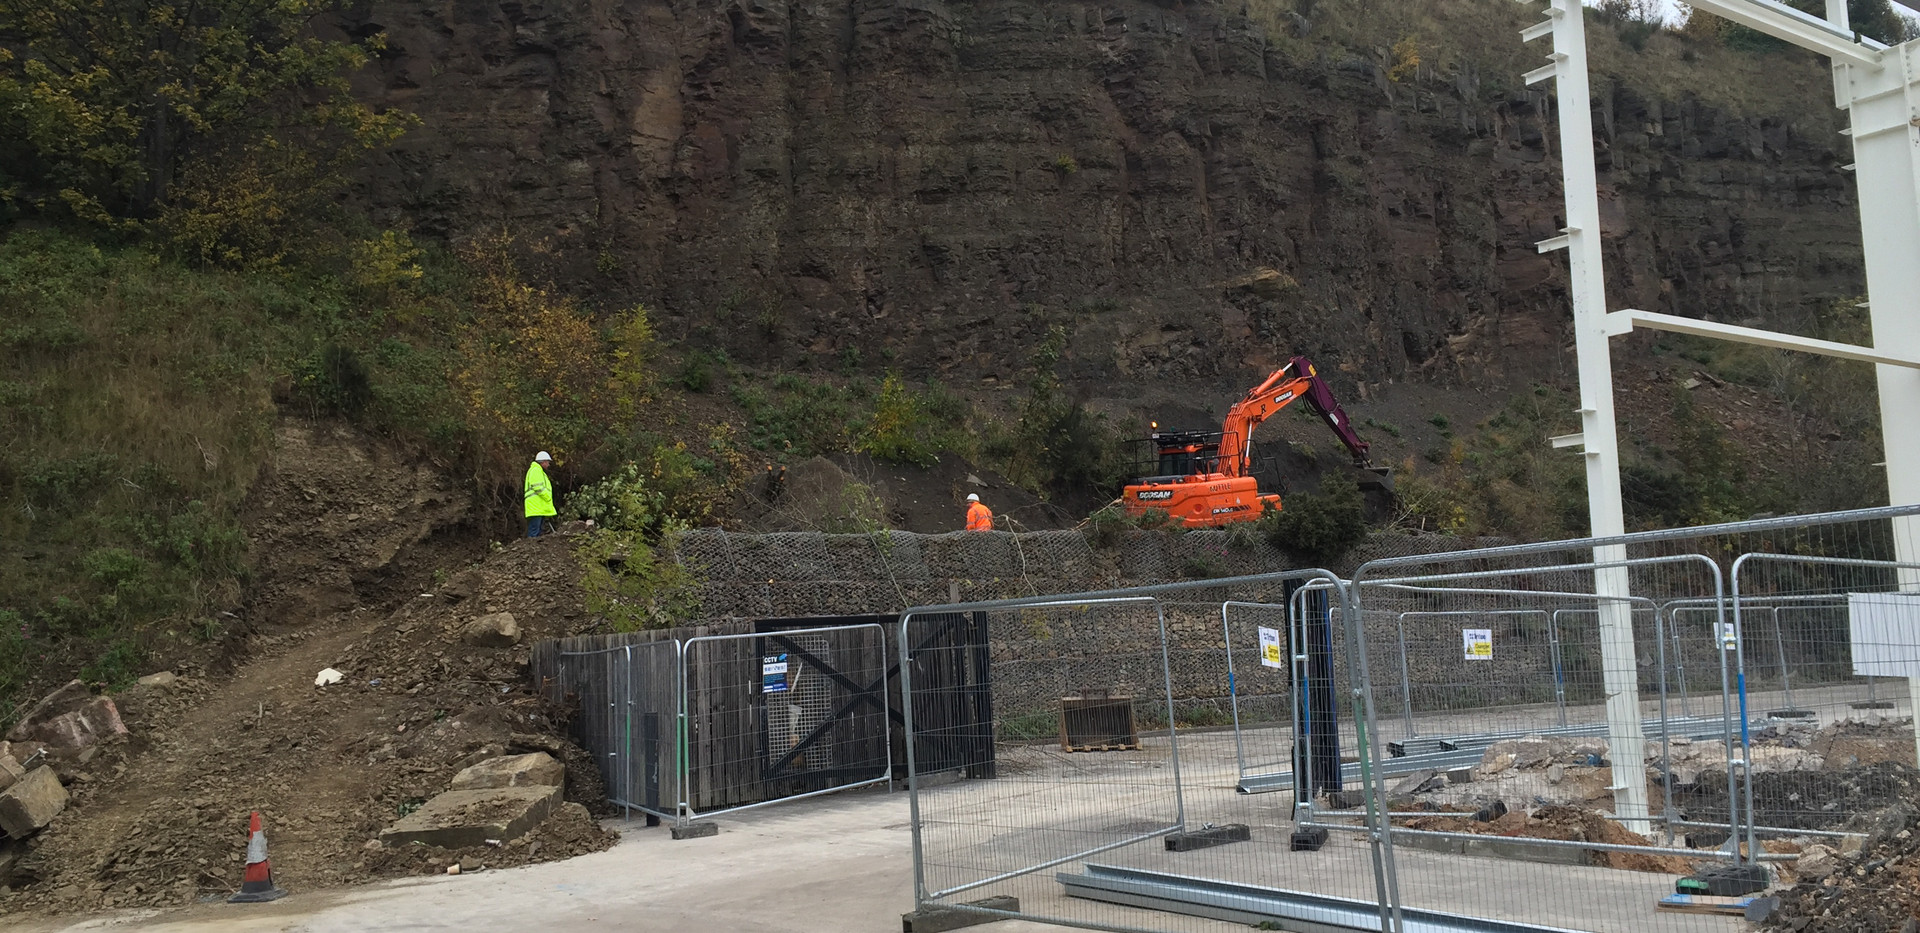 earthworks to provide catch trench